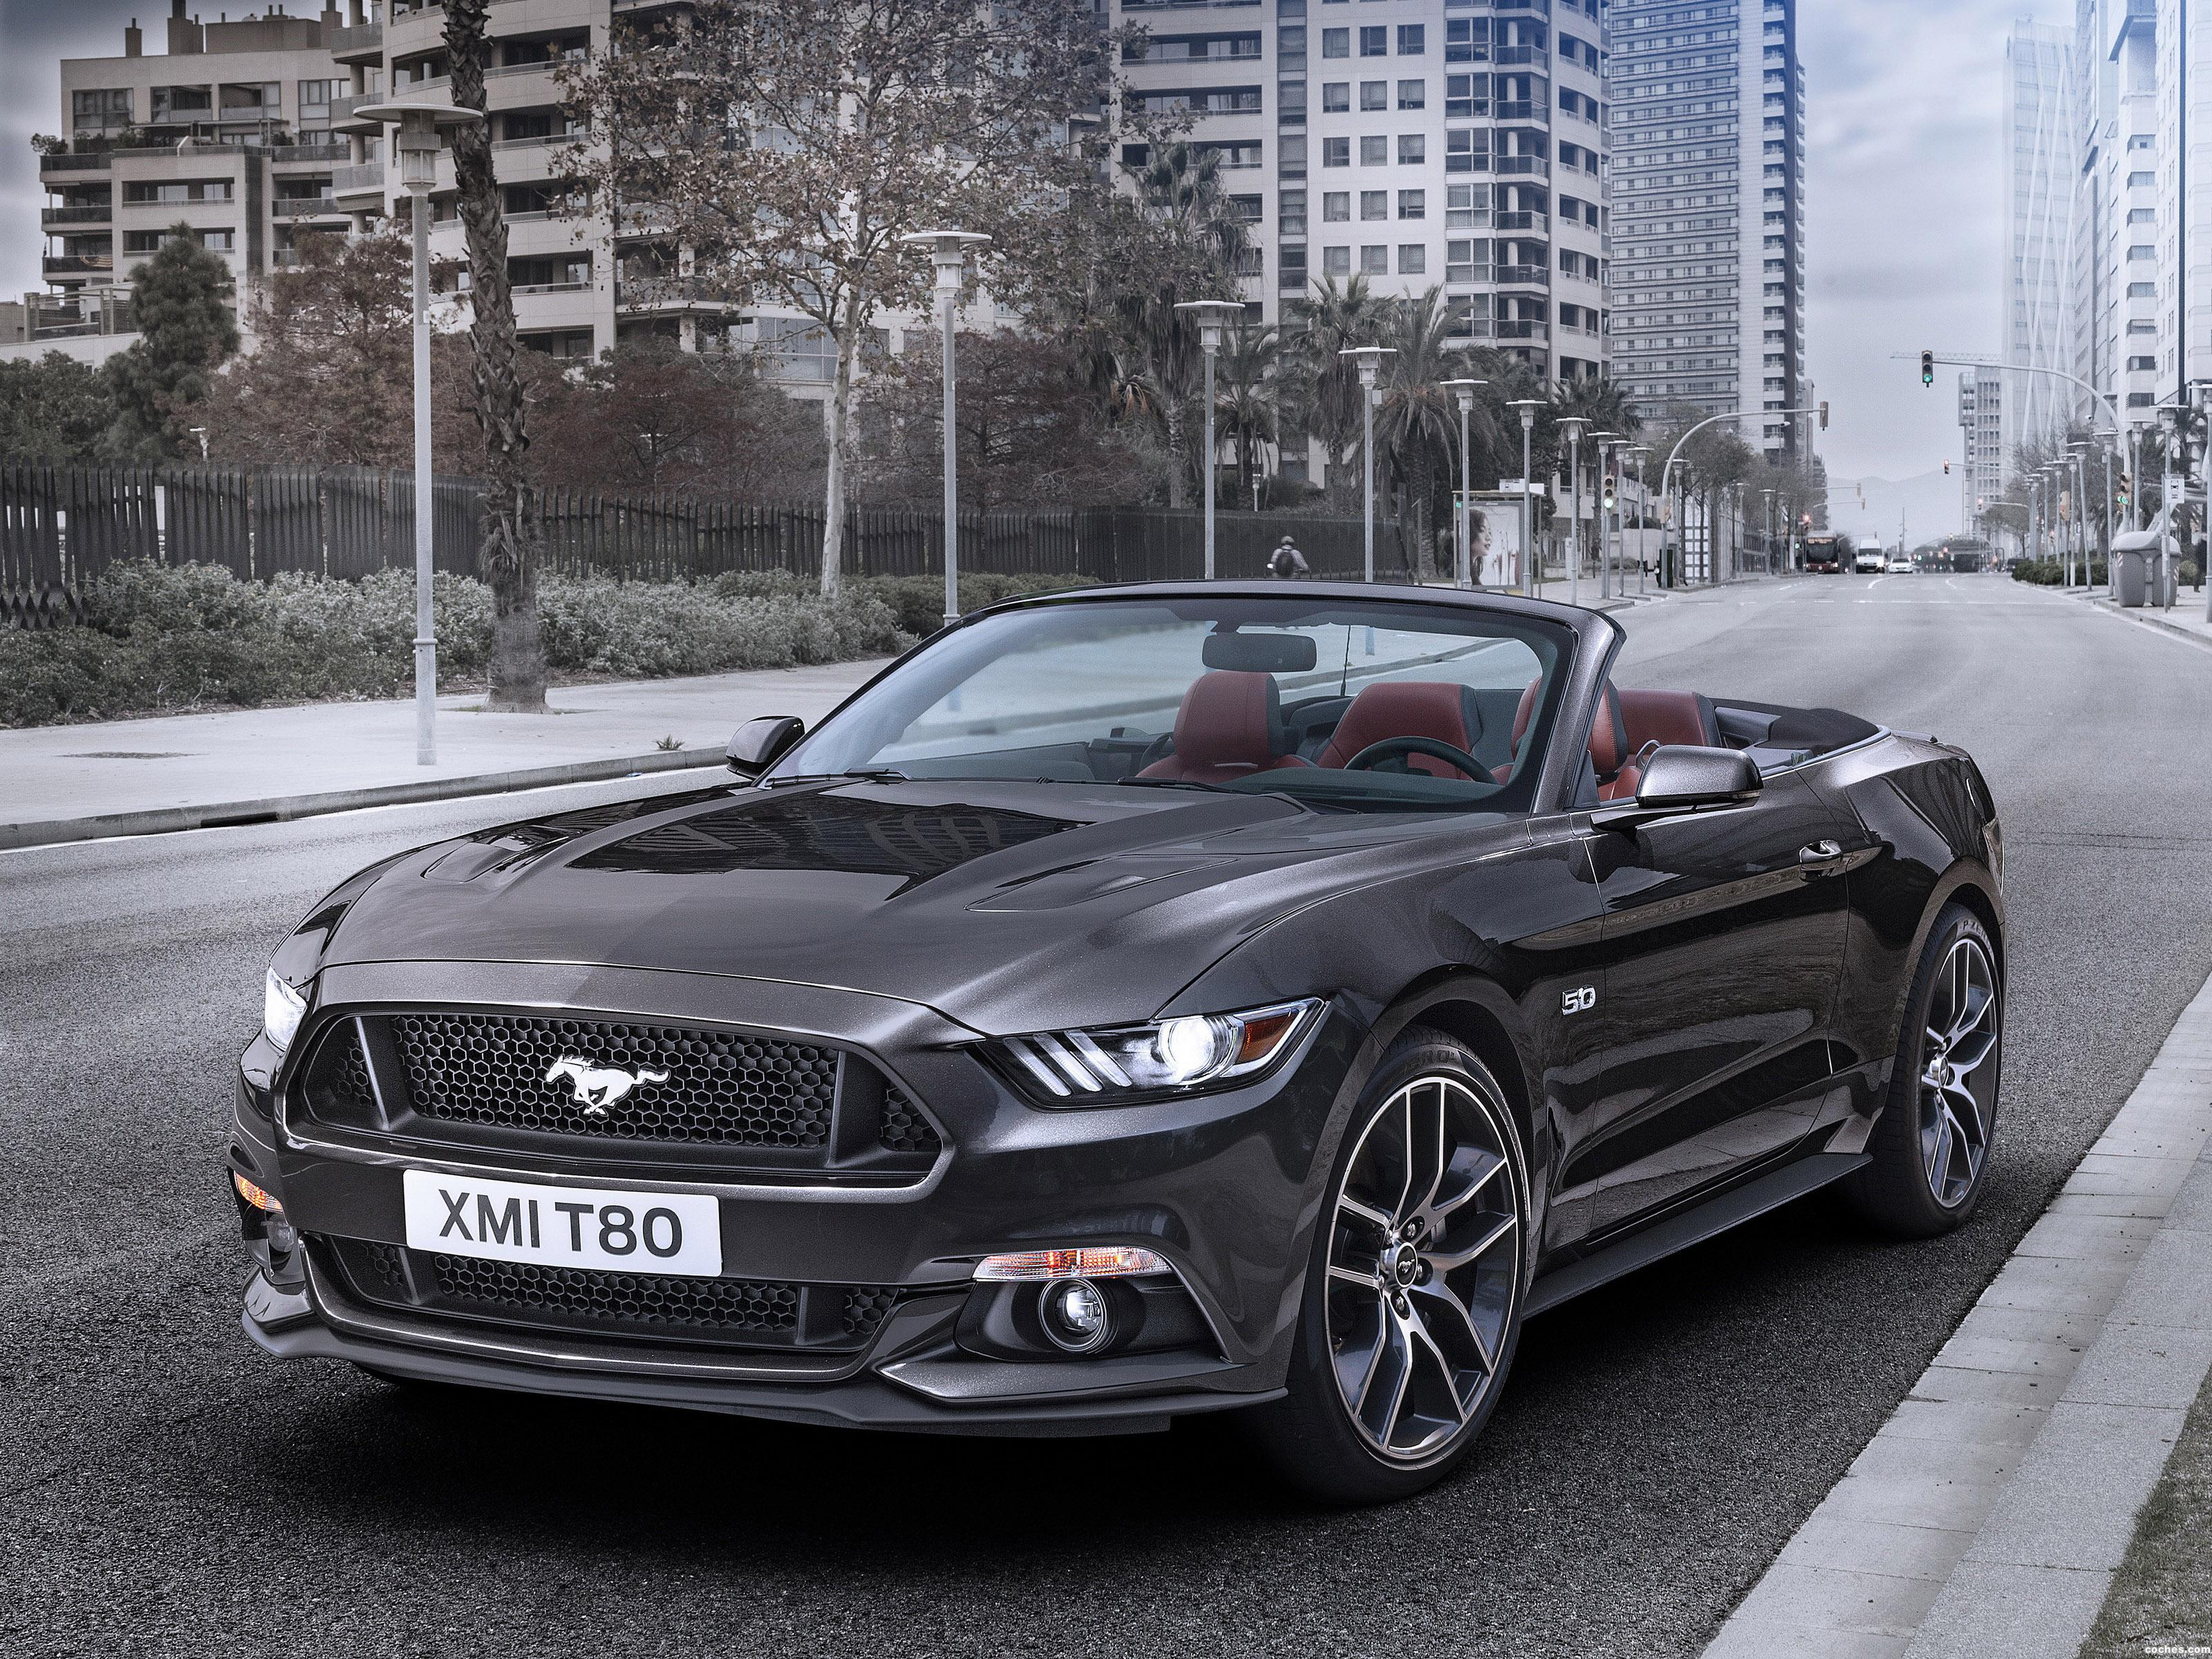 ford_mustang-gt-convertible-europe-2015_r23.jpg